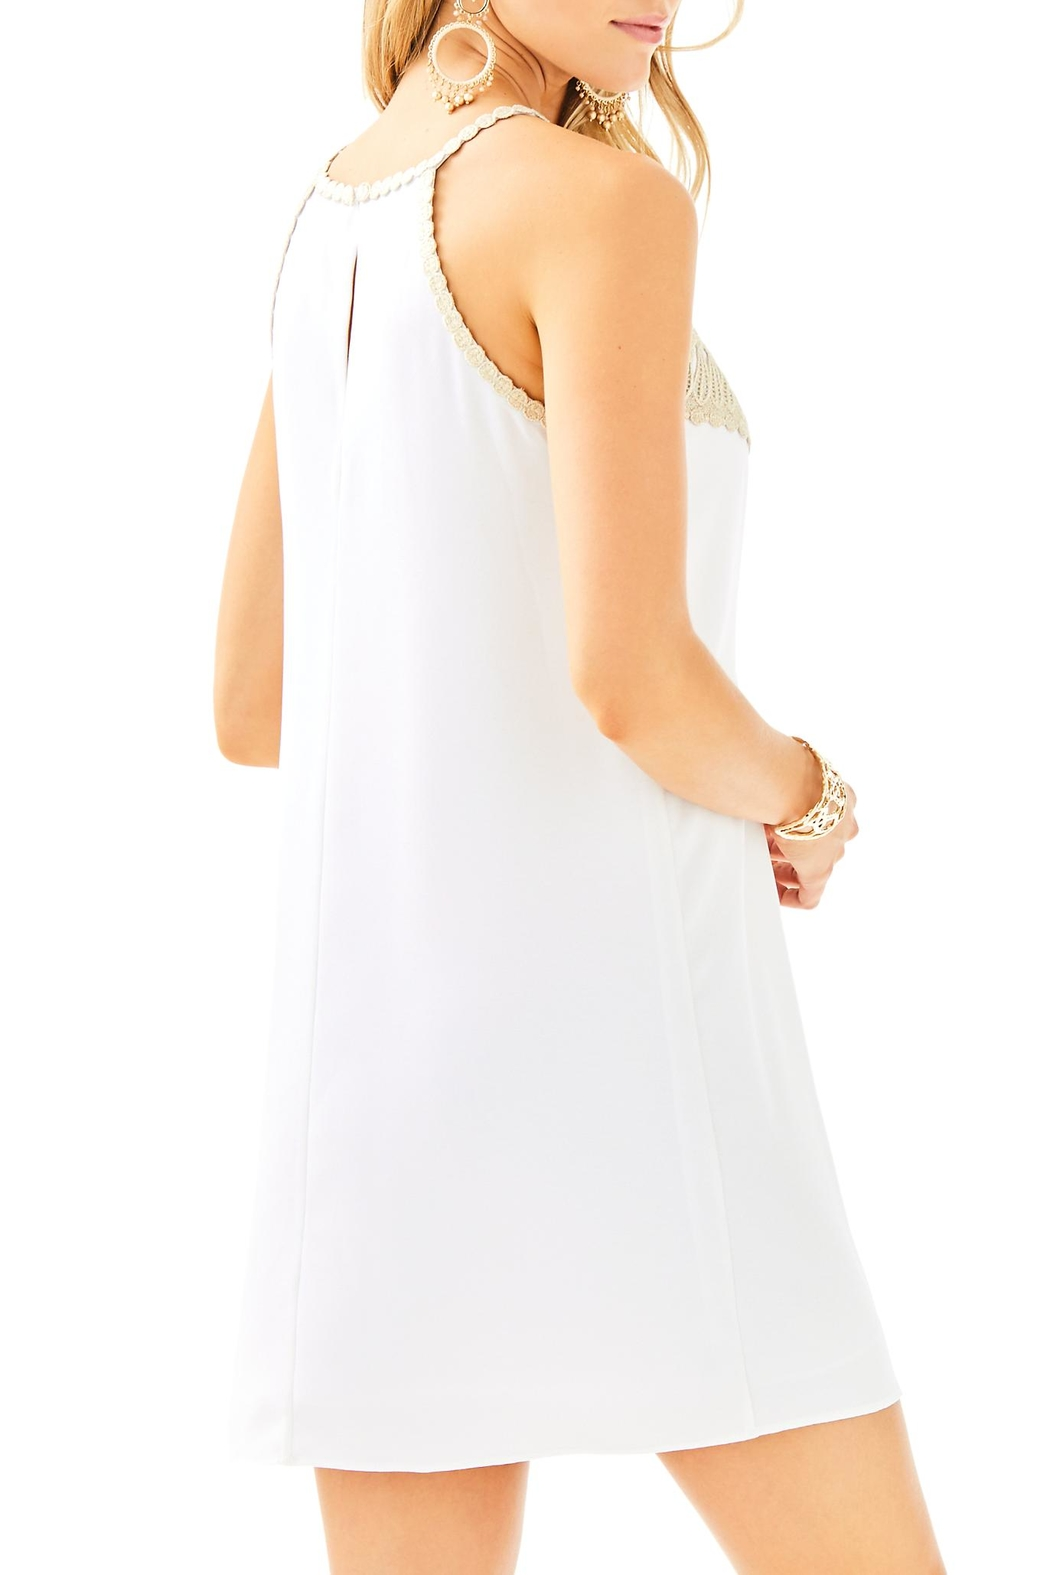 Lilly Pulitzer Pearl Soft Dress - Front Full Image